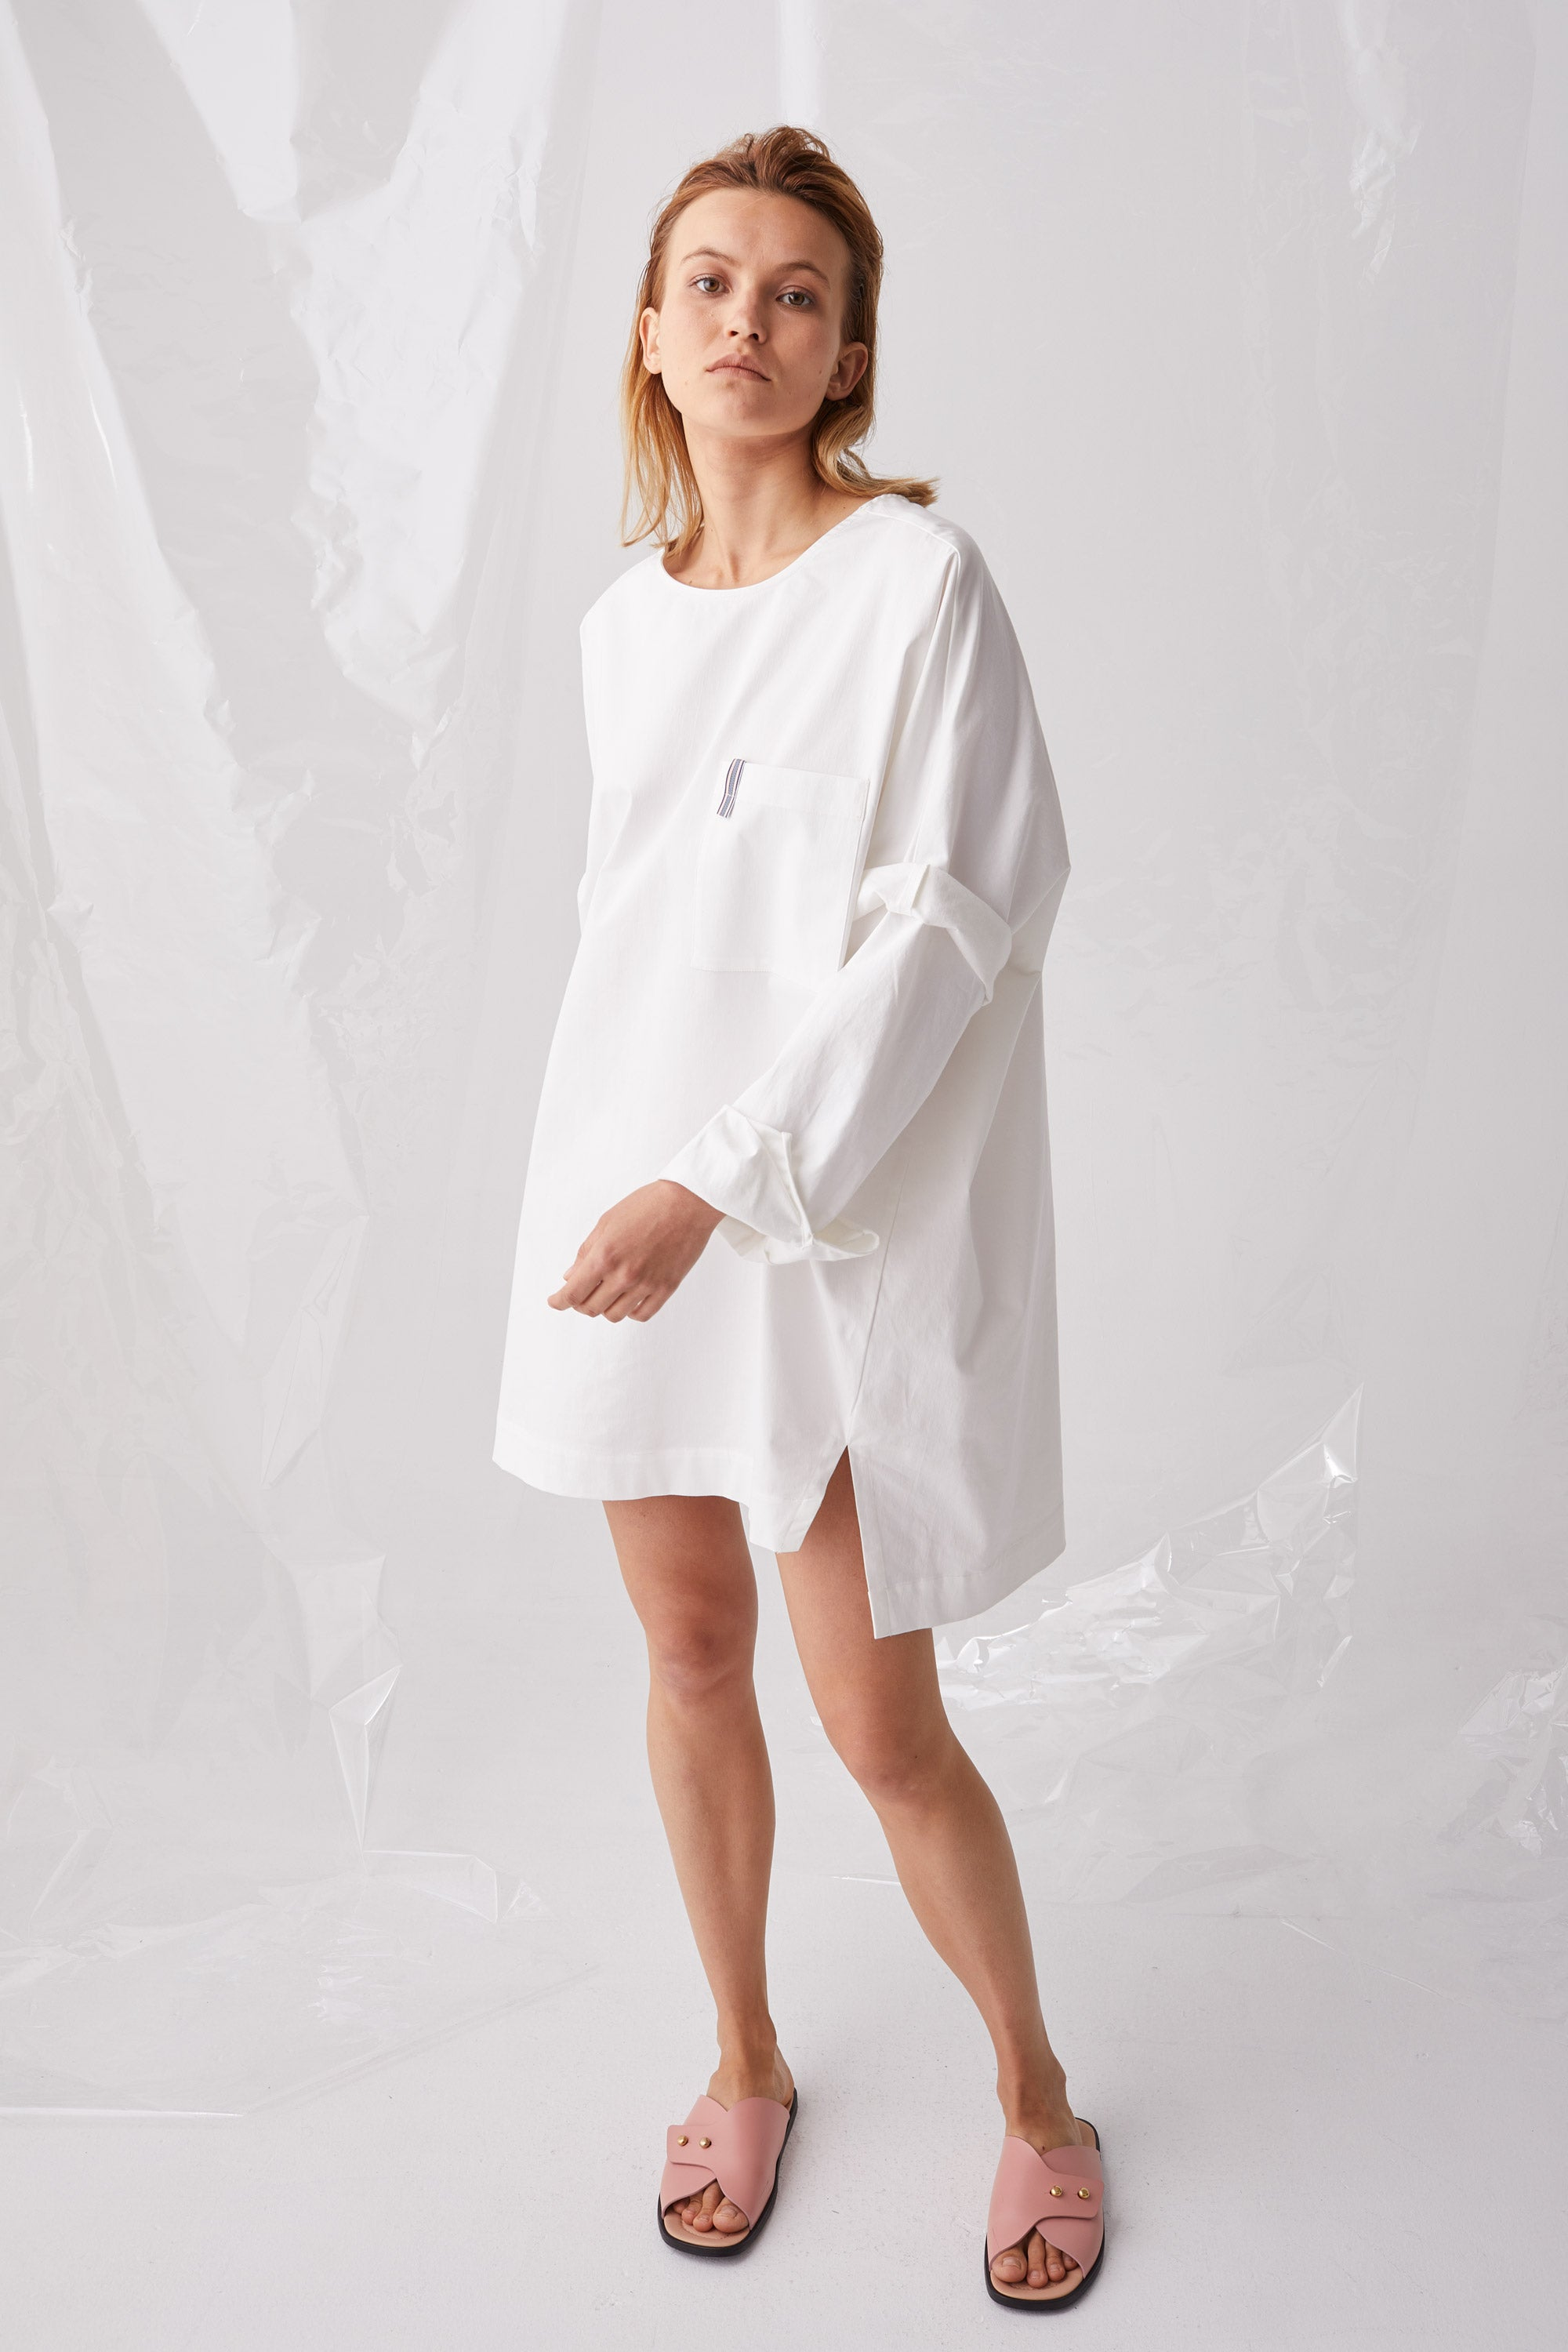 Ricochet NZ Fashion Designer Clothing Boutique SS18 Okazaki Dress Oversized White Cotton Poplin Made in NZ